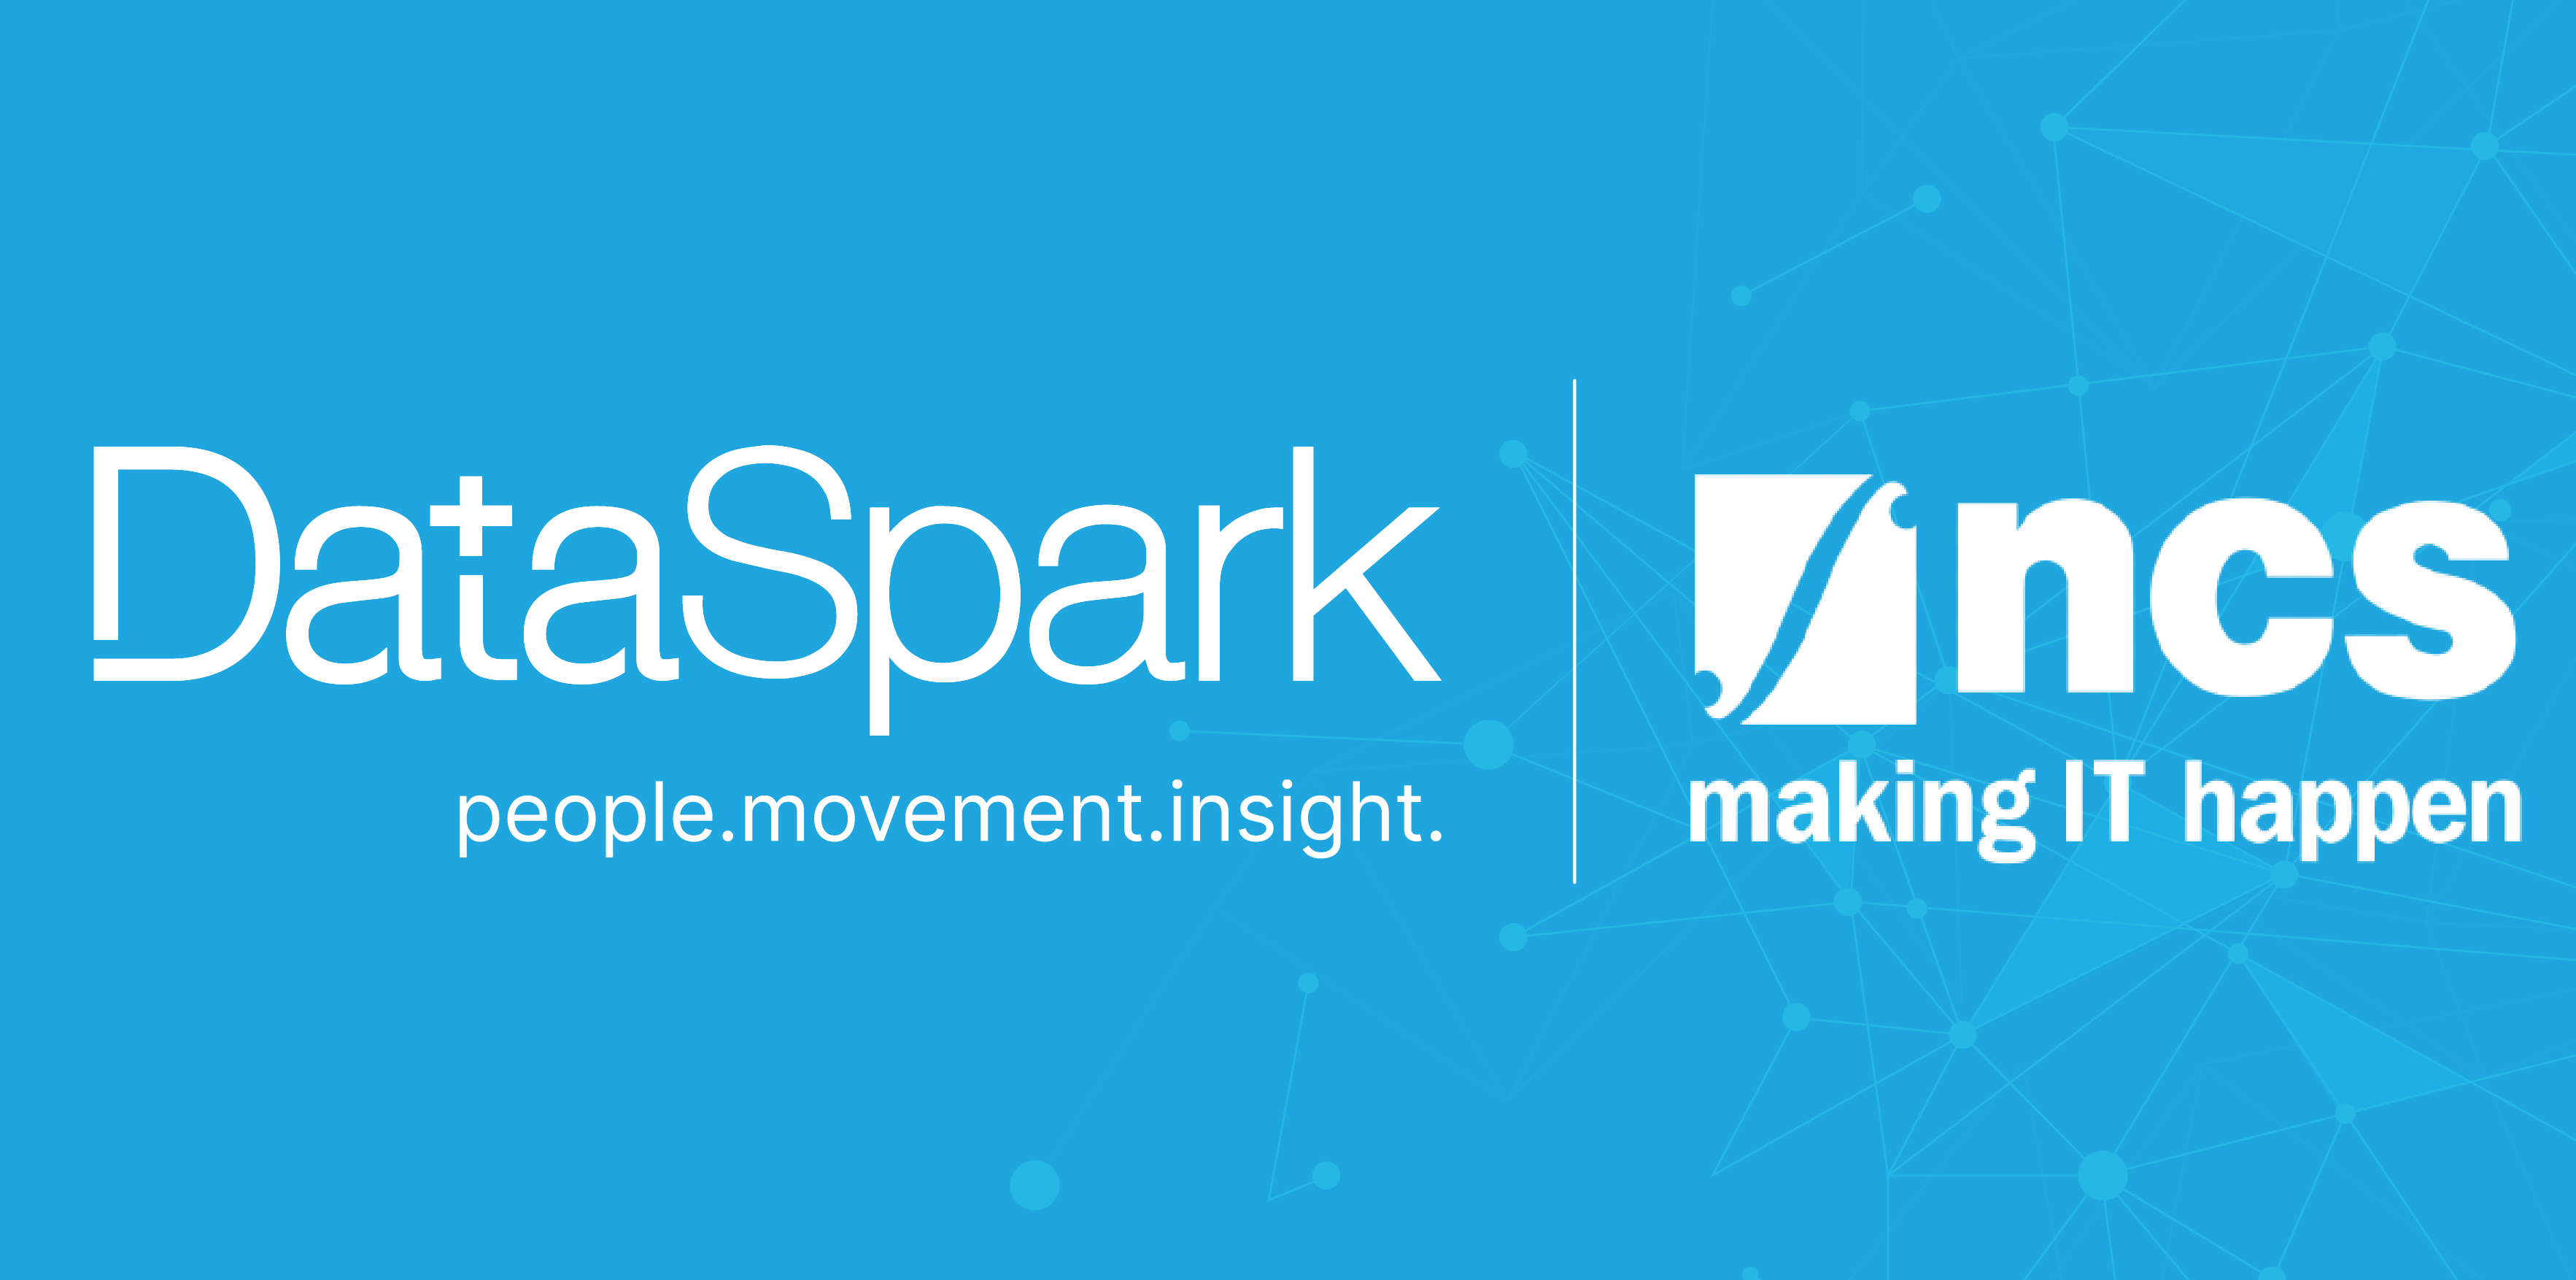 DataSpark integrates with NCS to expand footprint and service offerings